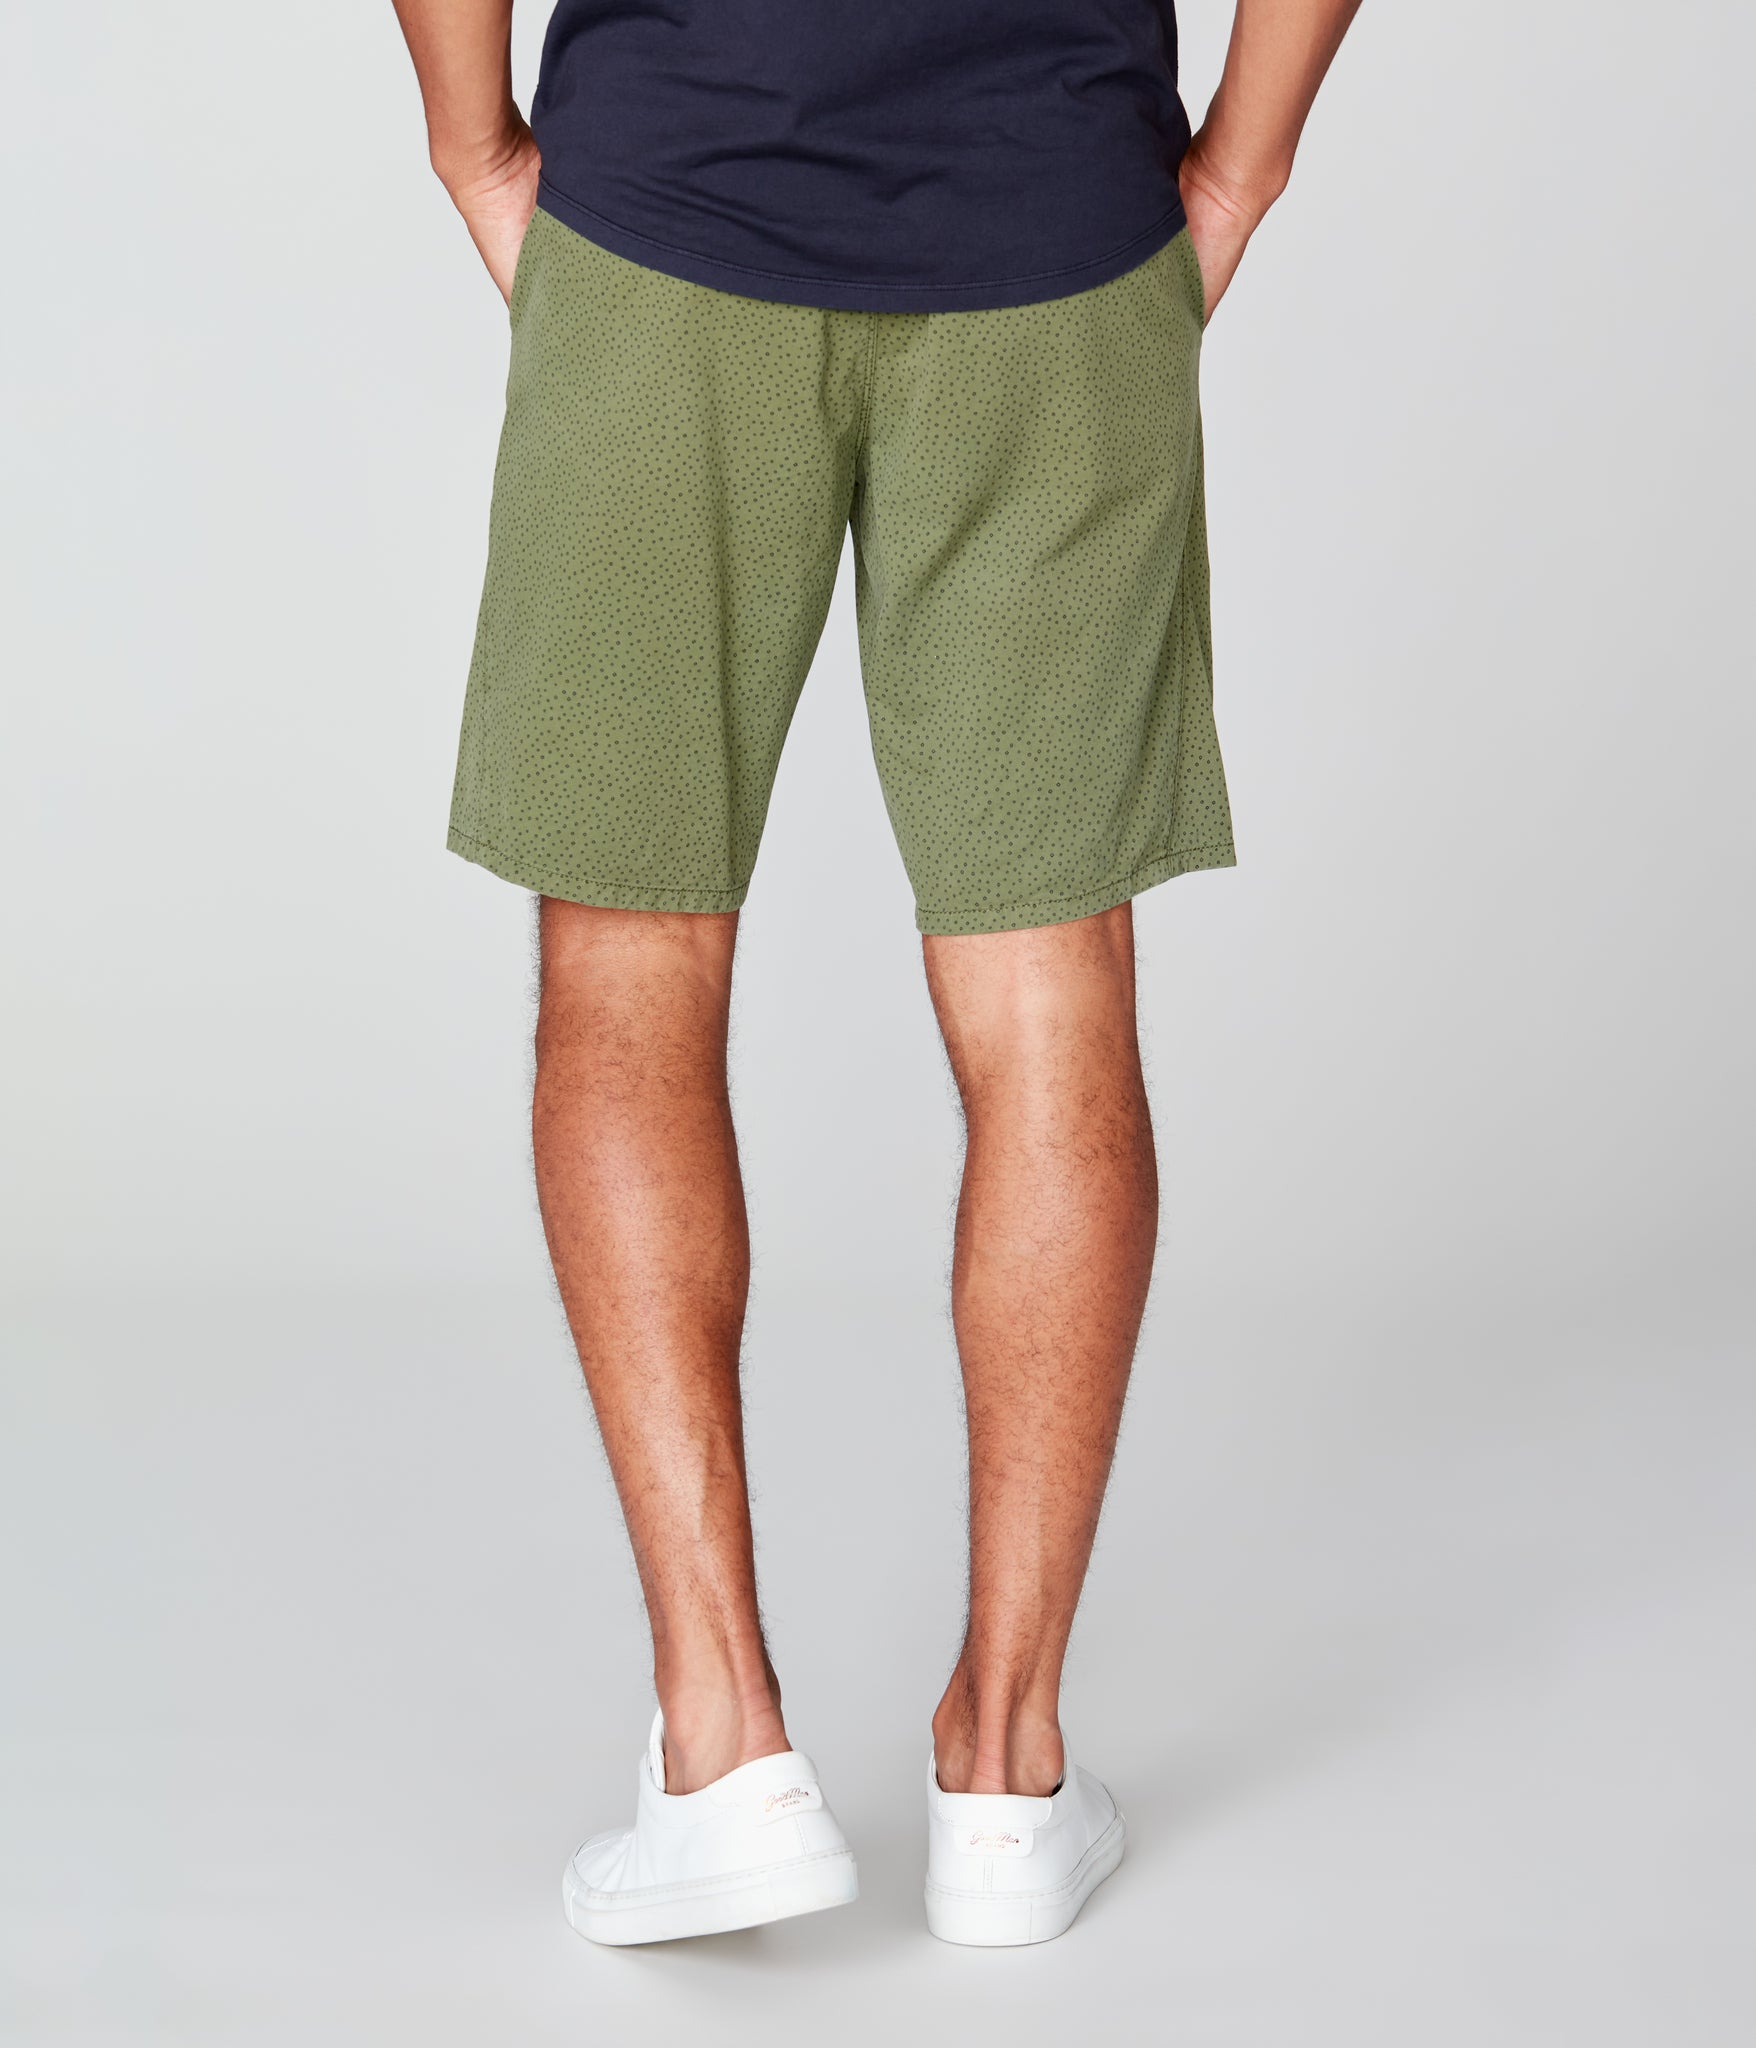 Monaco Stretch Twill Wrap Short - Palm